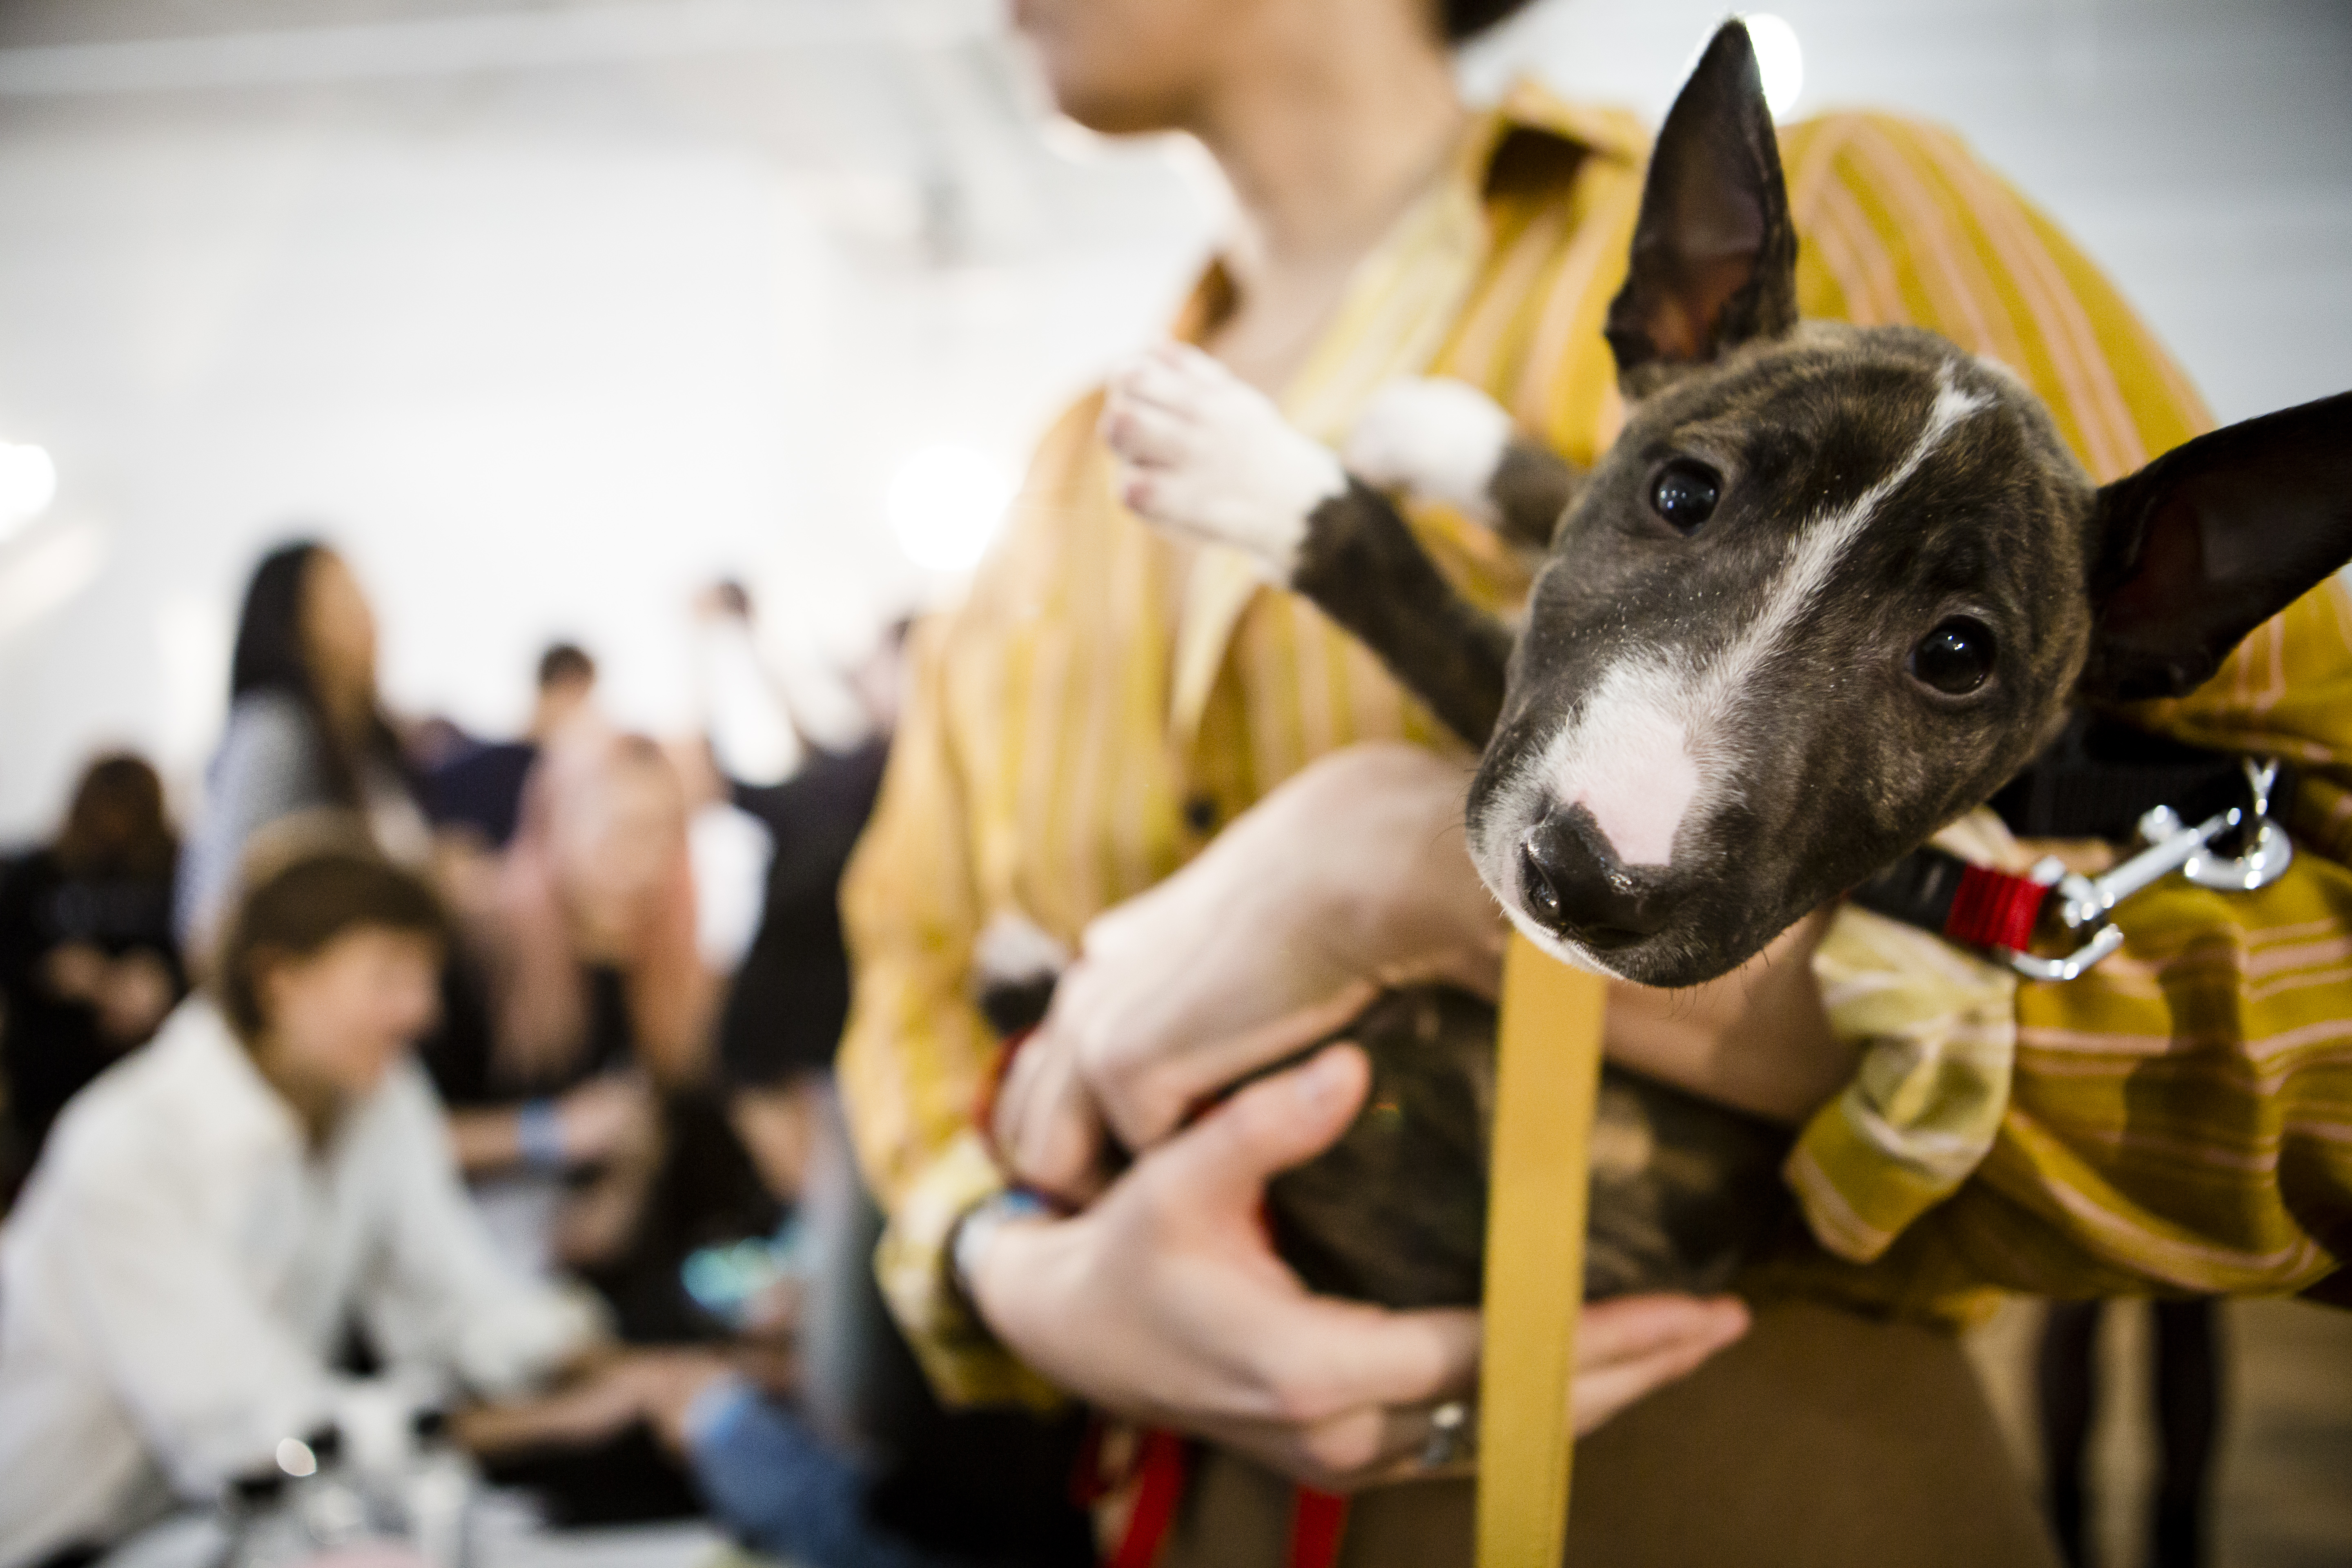 Creatures of Comfort - Backstage - Fall 2016 New York Fashion Week